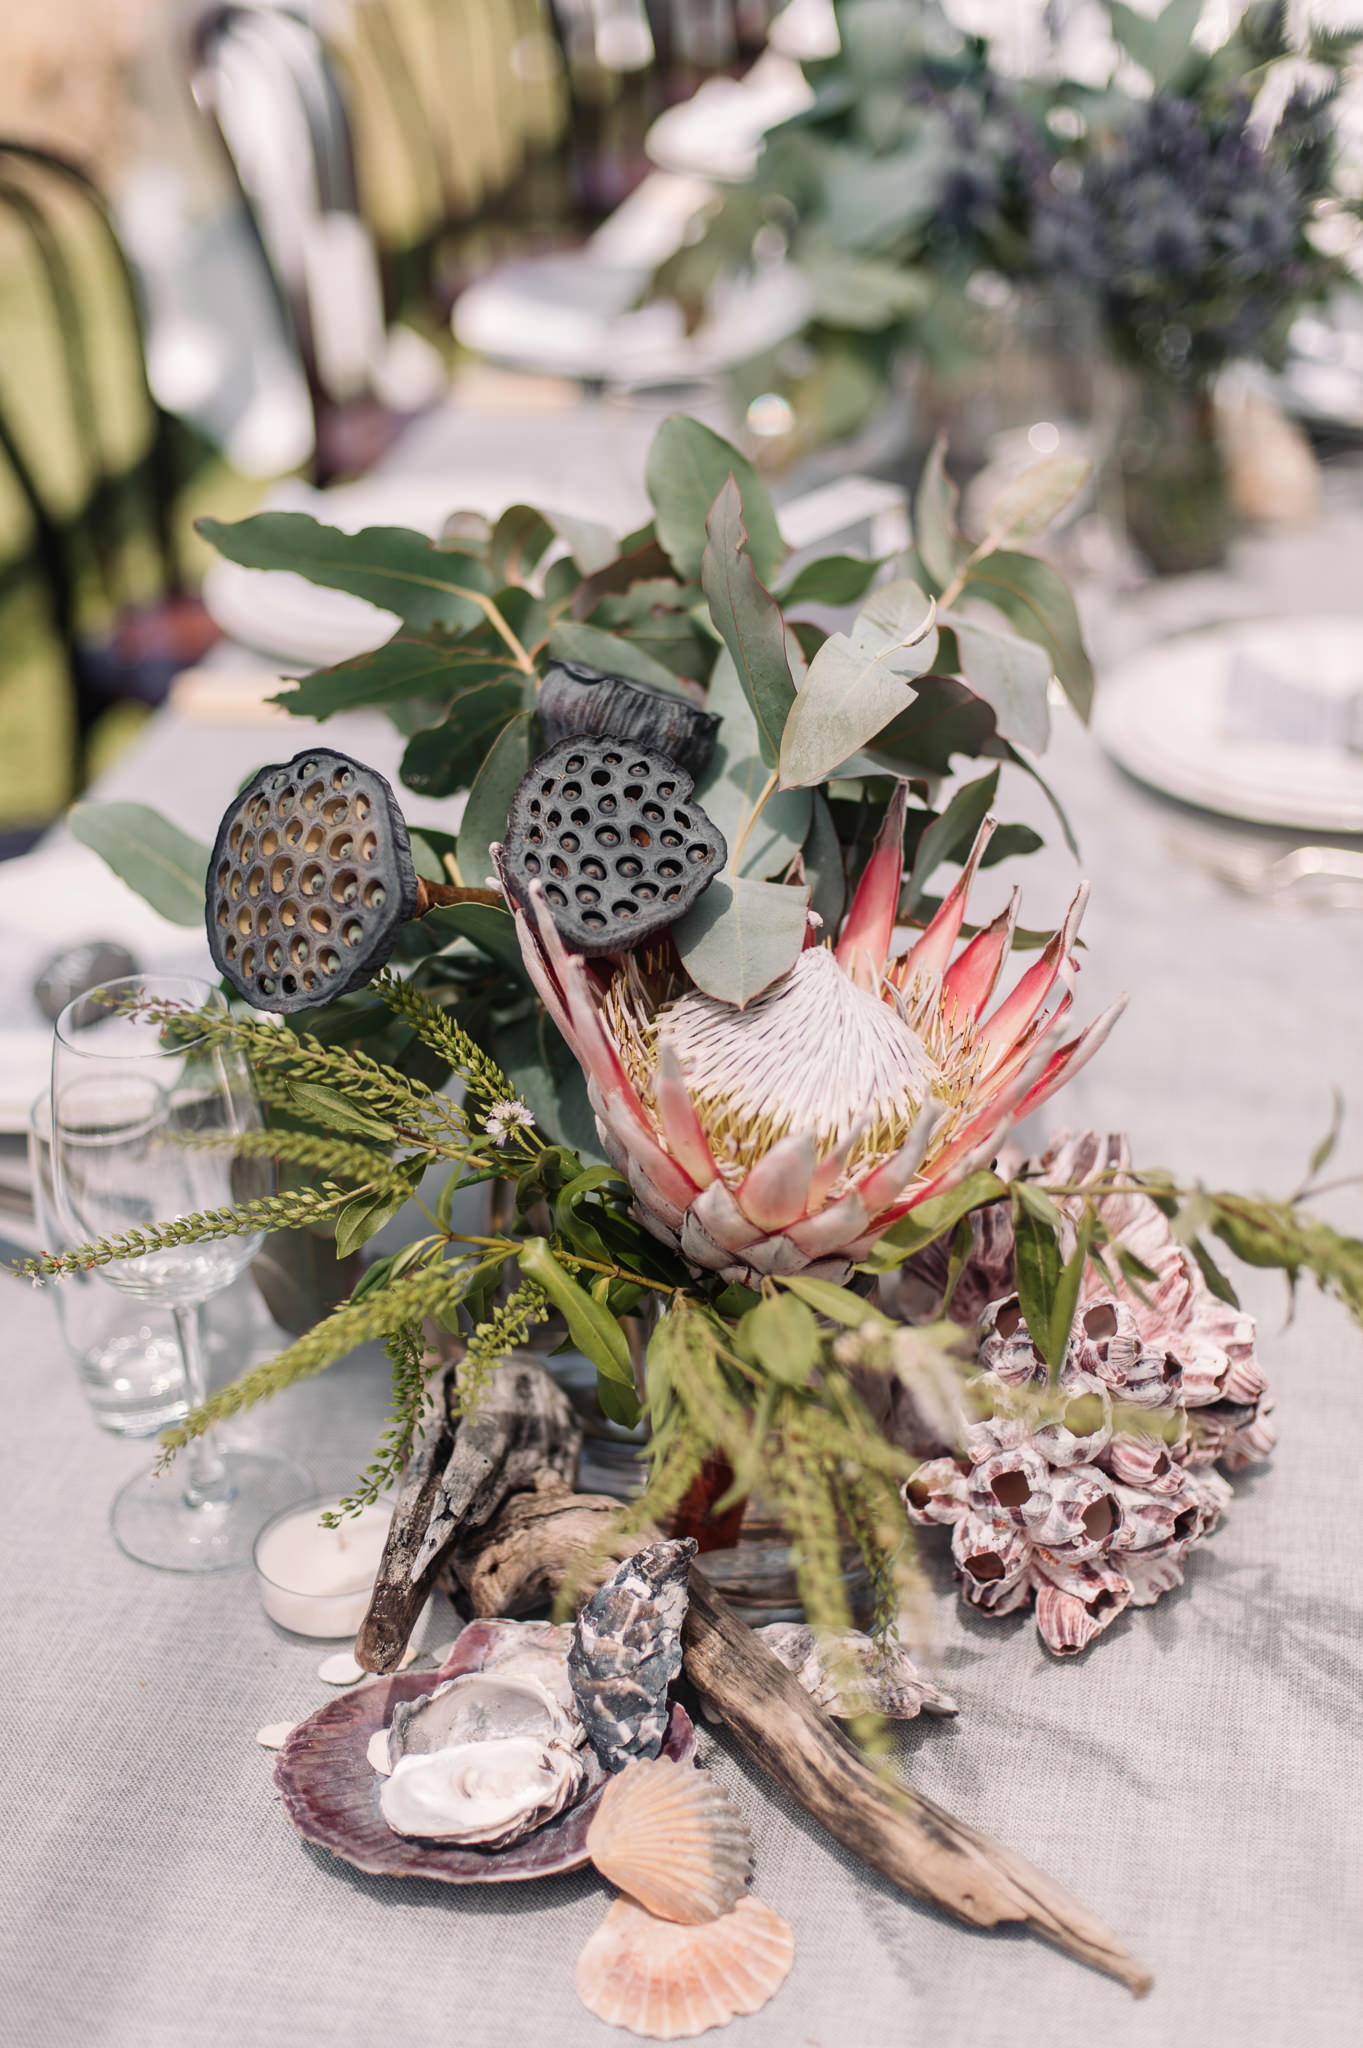 Coastal elements and native flowers for the table decorations